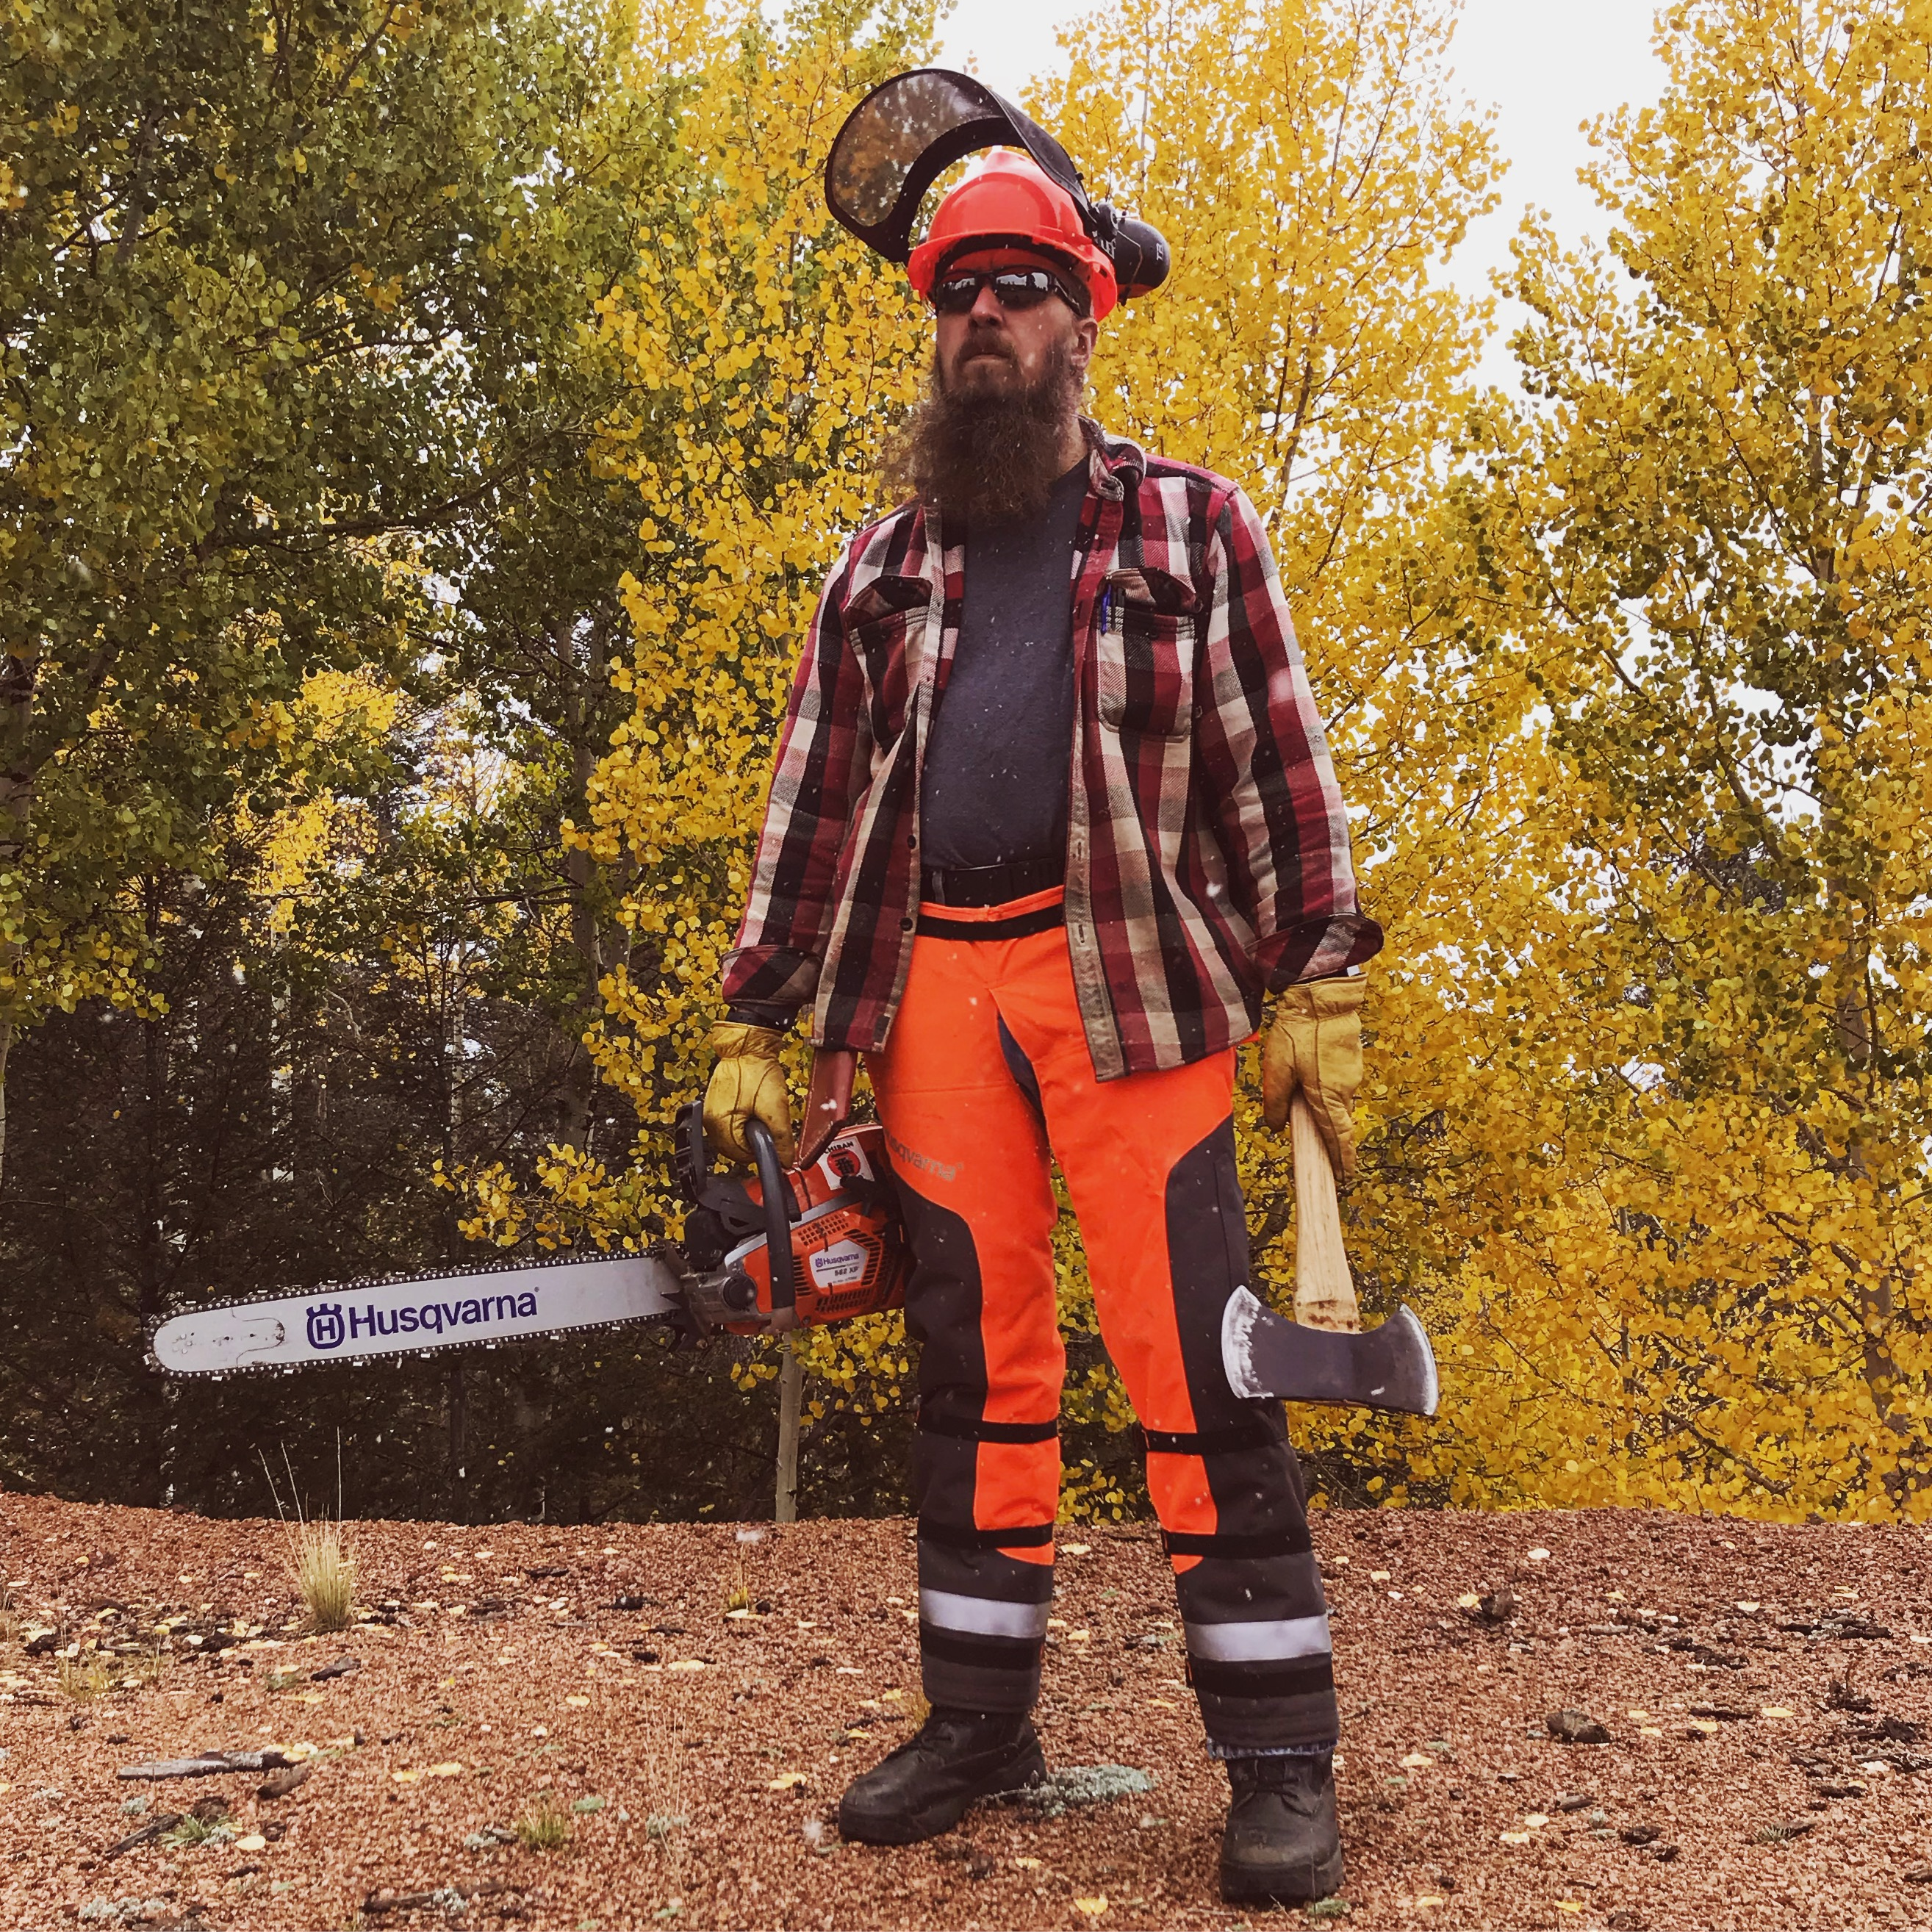 Mike with an axe and chainsaw